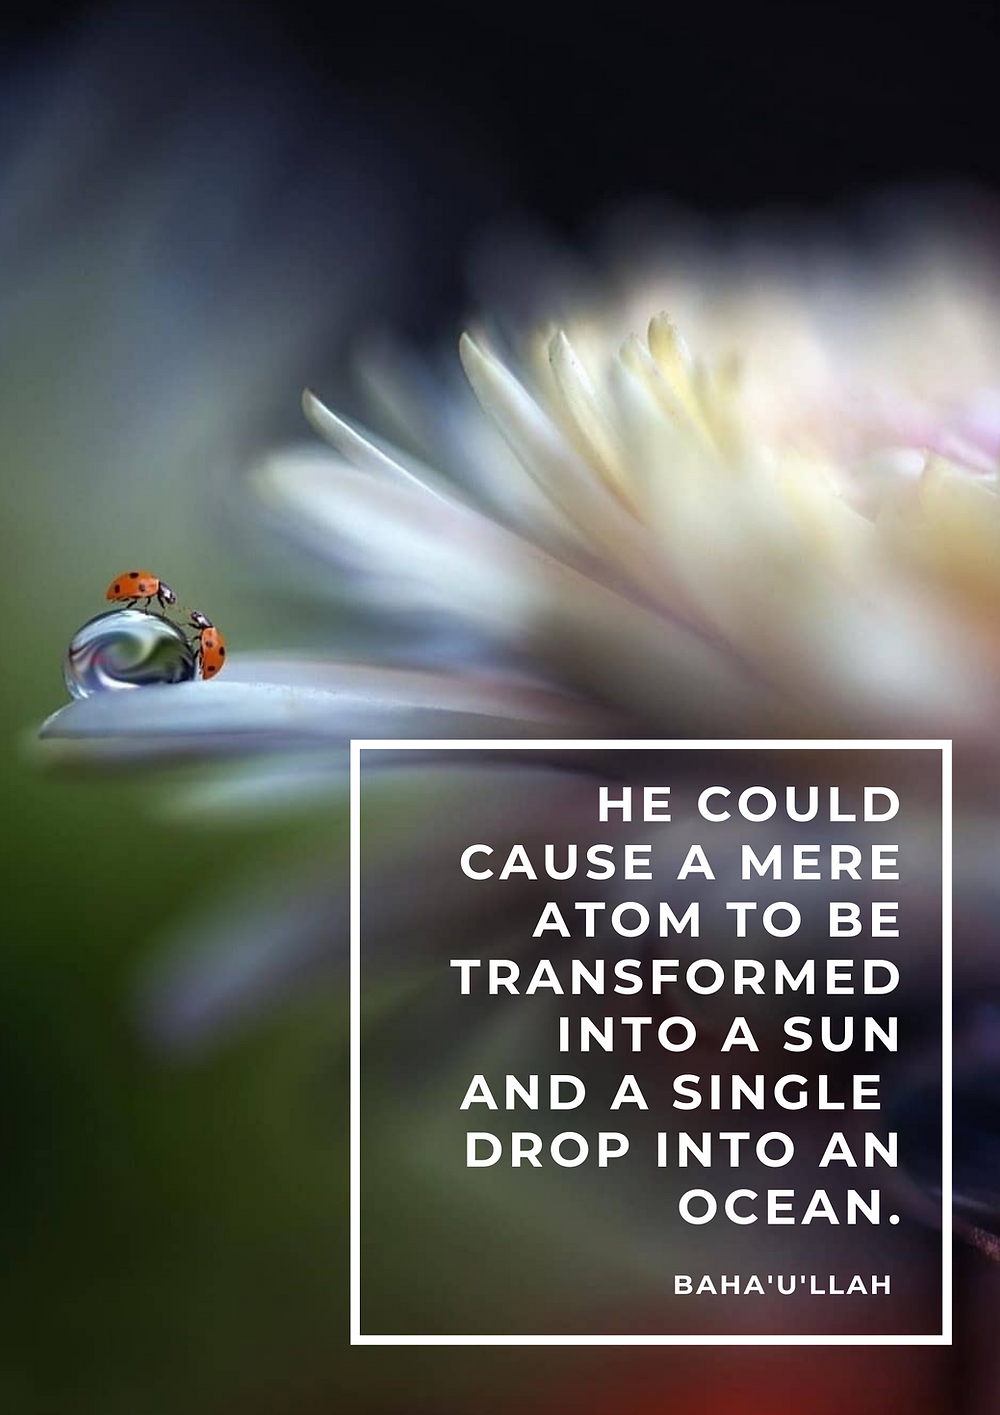 He could cause a mere atom to be transformed into a sun and a single drop into an ocean. - Baha'u'llah